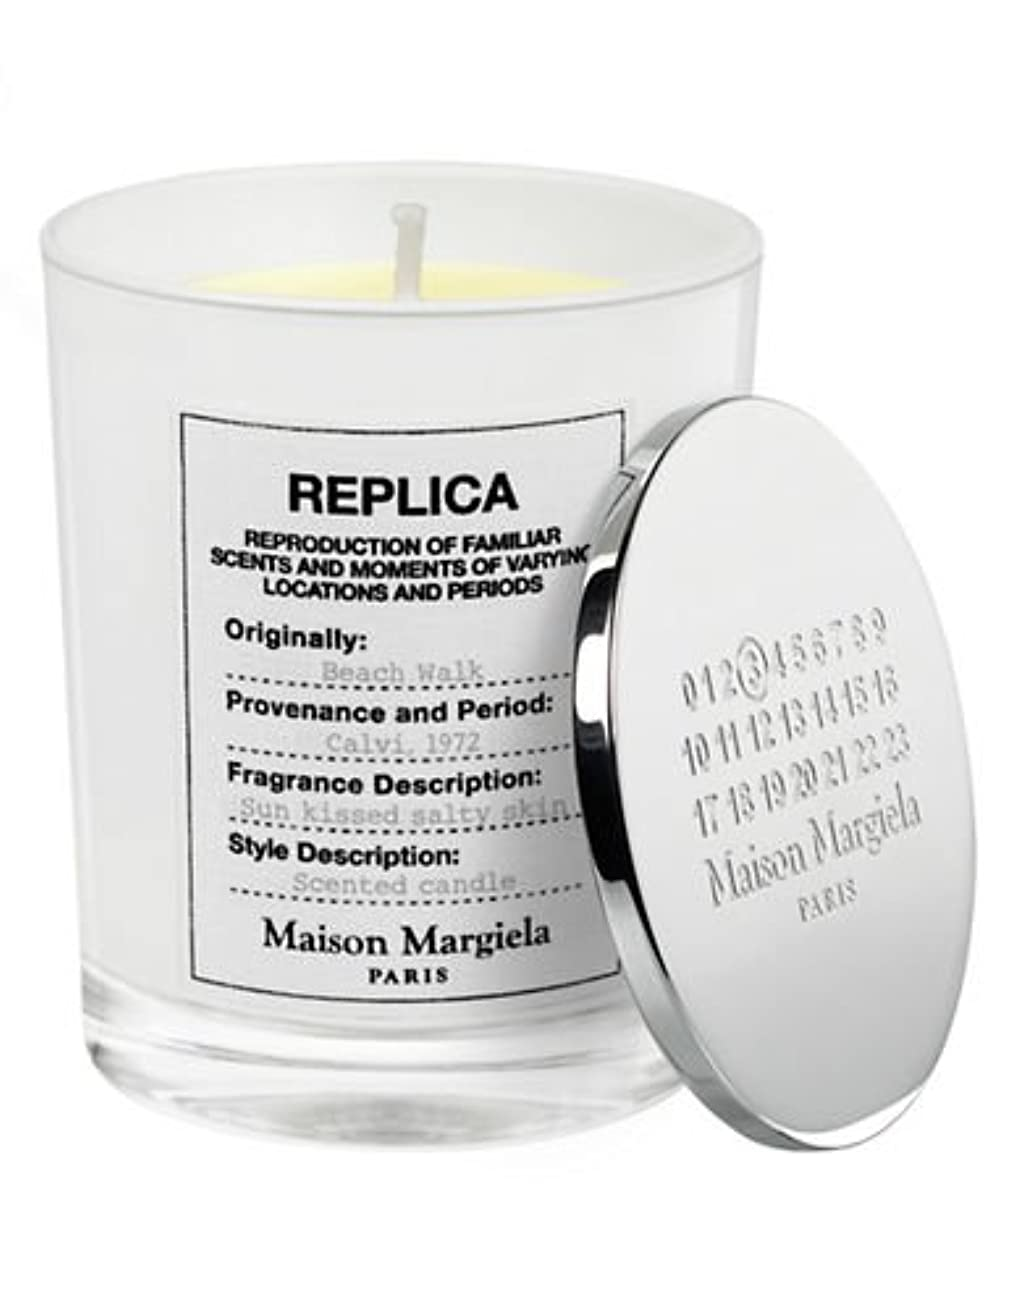 虐殺十分に連帯( 1 ) Maison Margiela 'レプリカ' Beach Walk Scented Candle 5.82oz